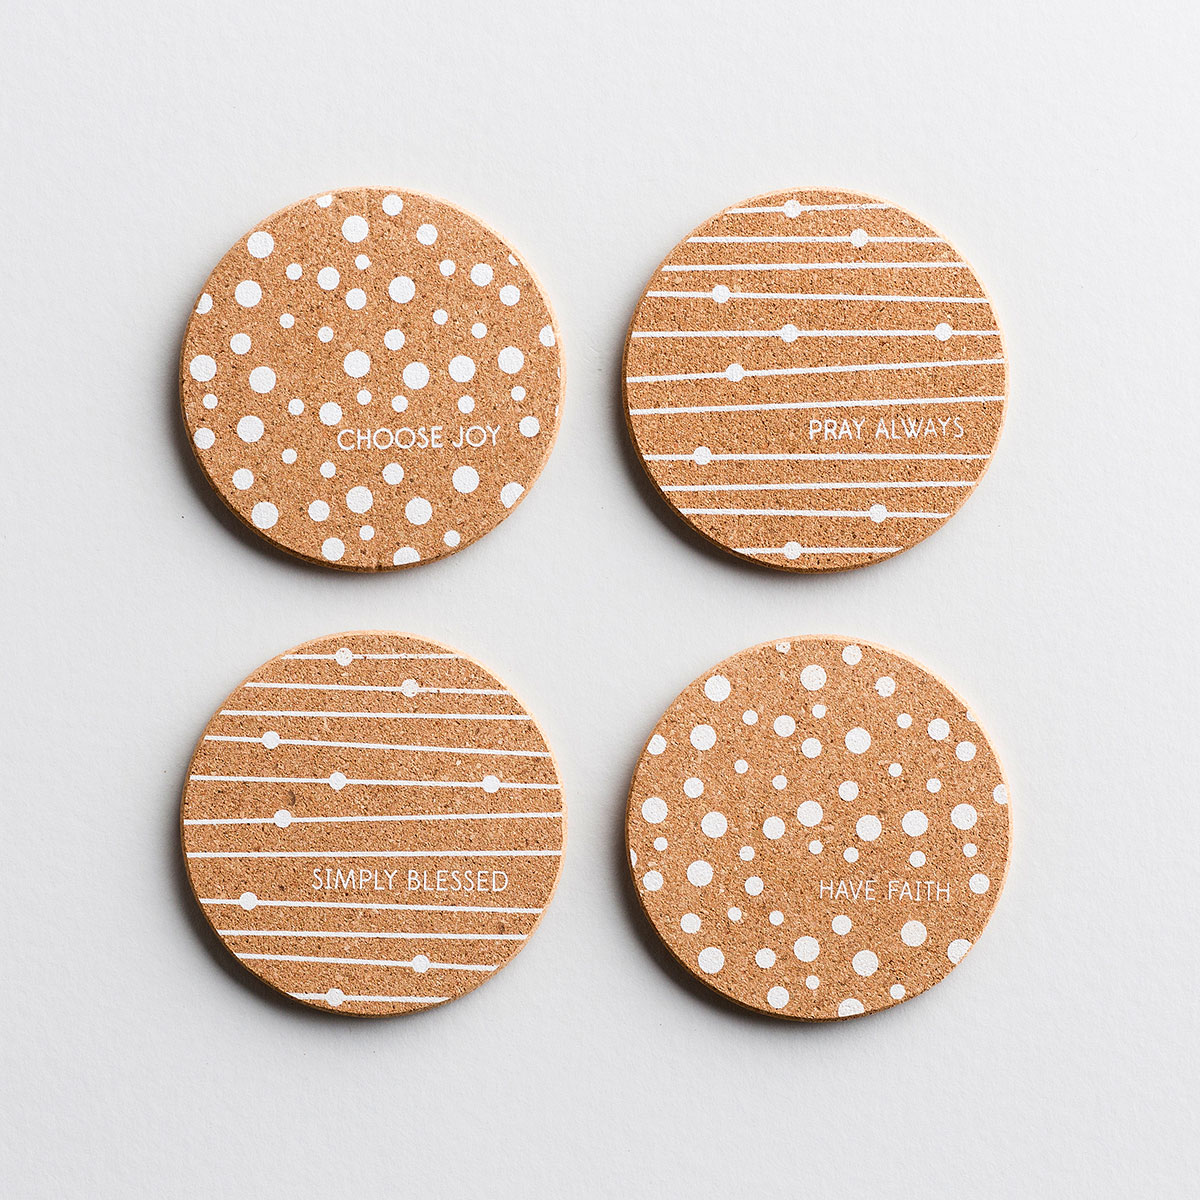 Choose Joy - Cork Coasters, Set of 4